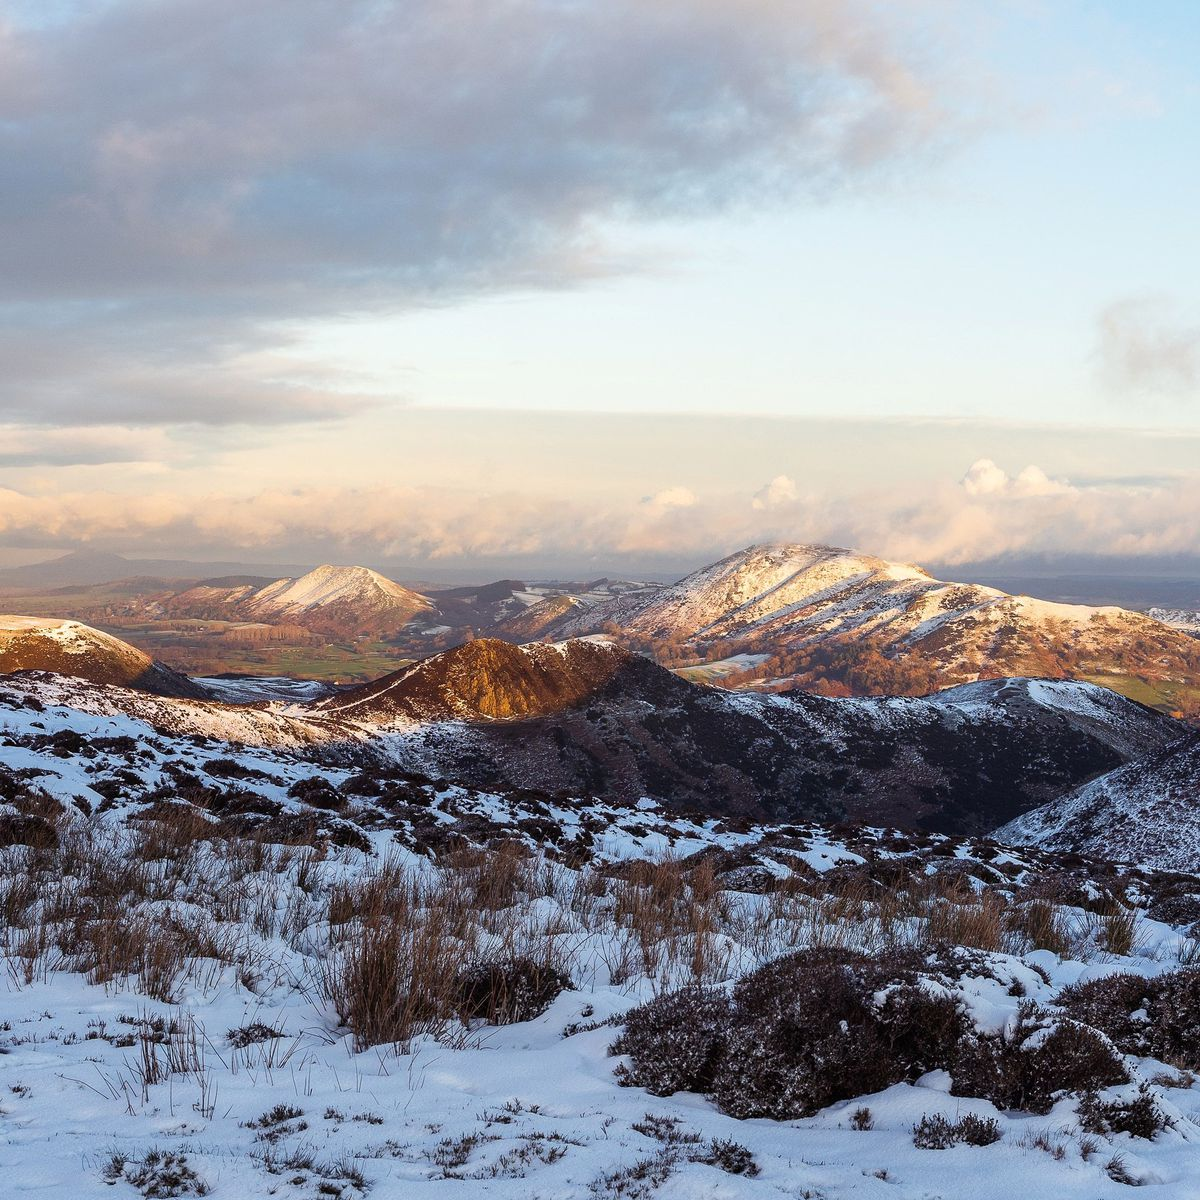 Snow on the Long Mynd this week. Photo: Andrew Farrow @fffarrow